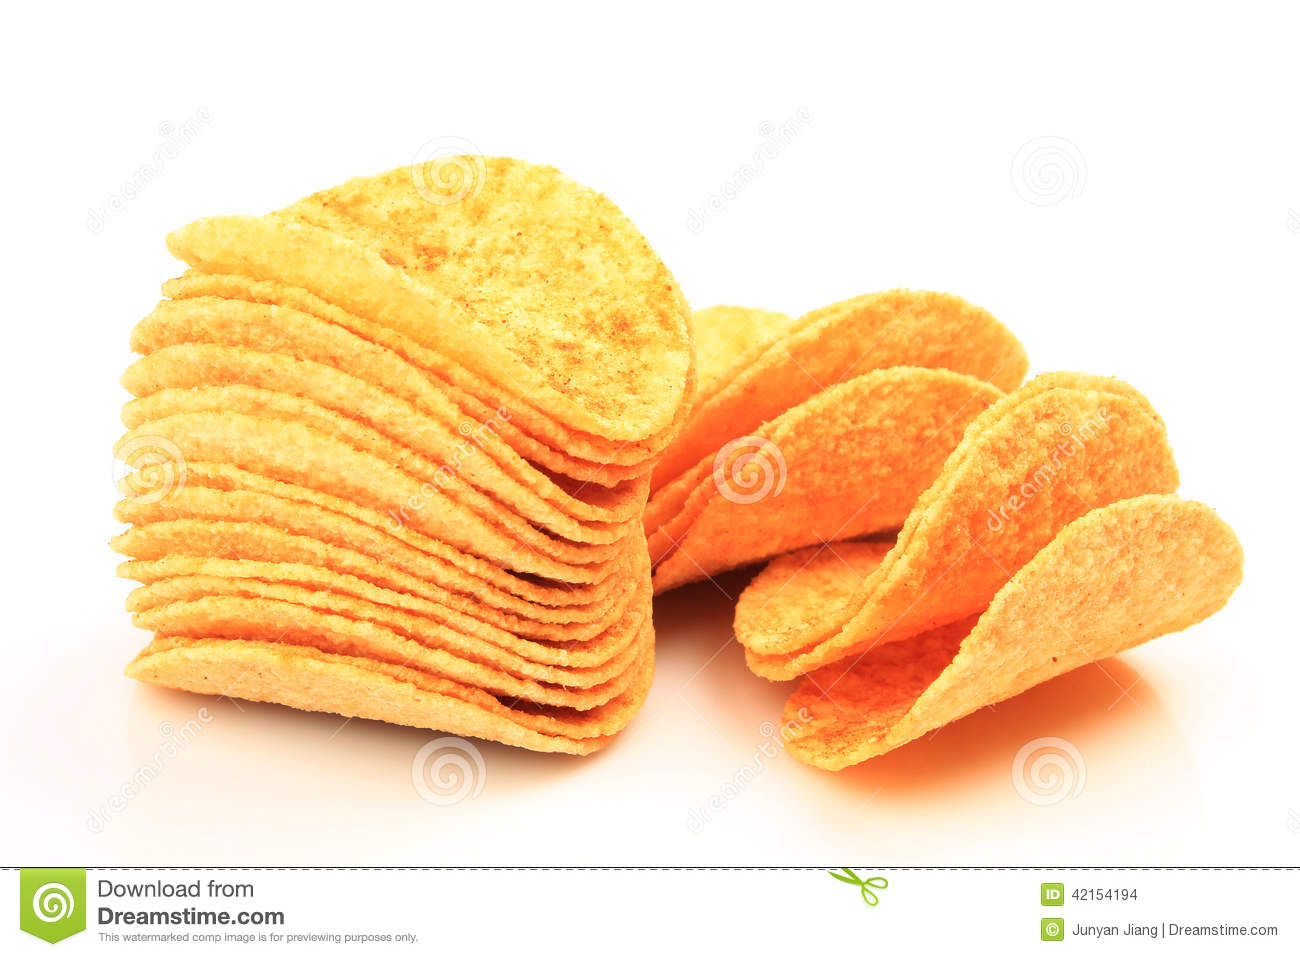 Crispy Potato Chips Stock Photo - Image: 42154194